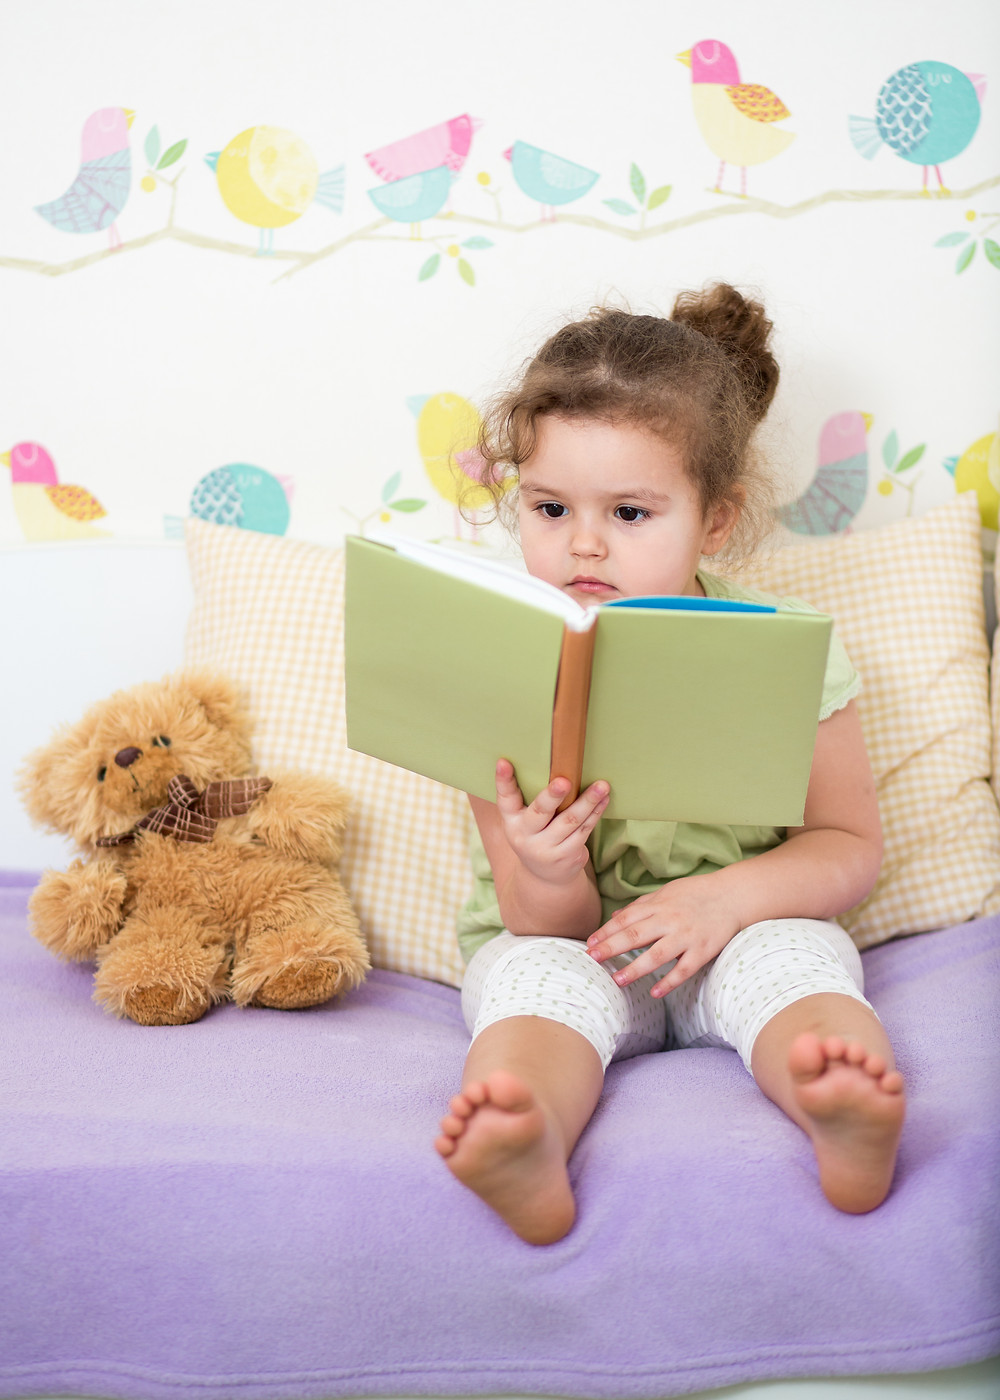 little girl holding a book while sitting on a purple cushion